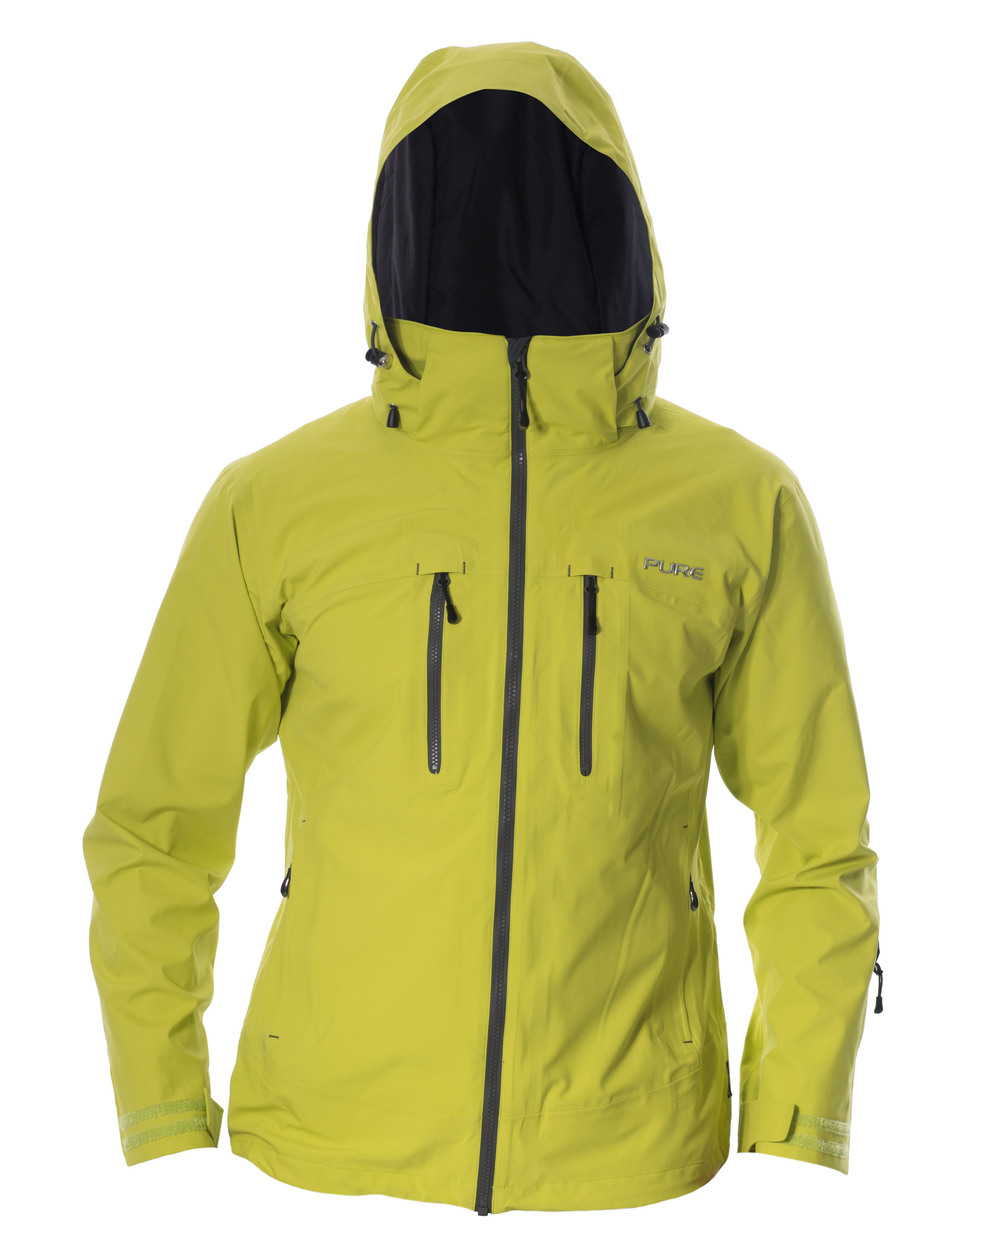 Copy of Everest Men's Jacket - Lime / Ebony Zips